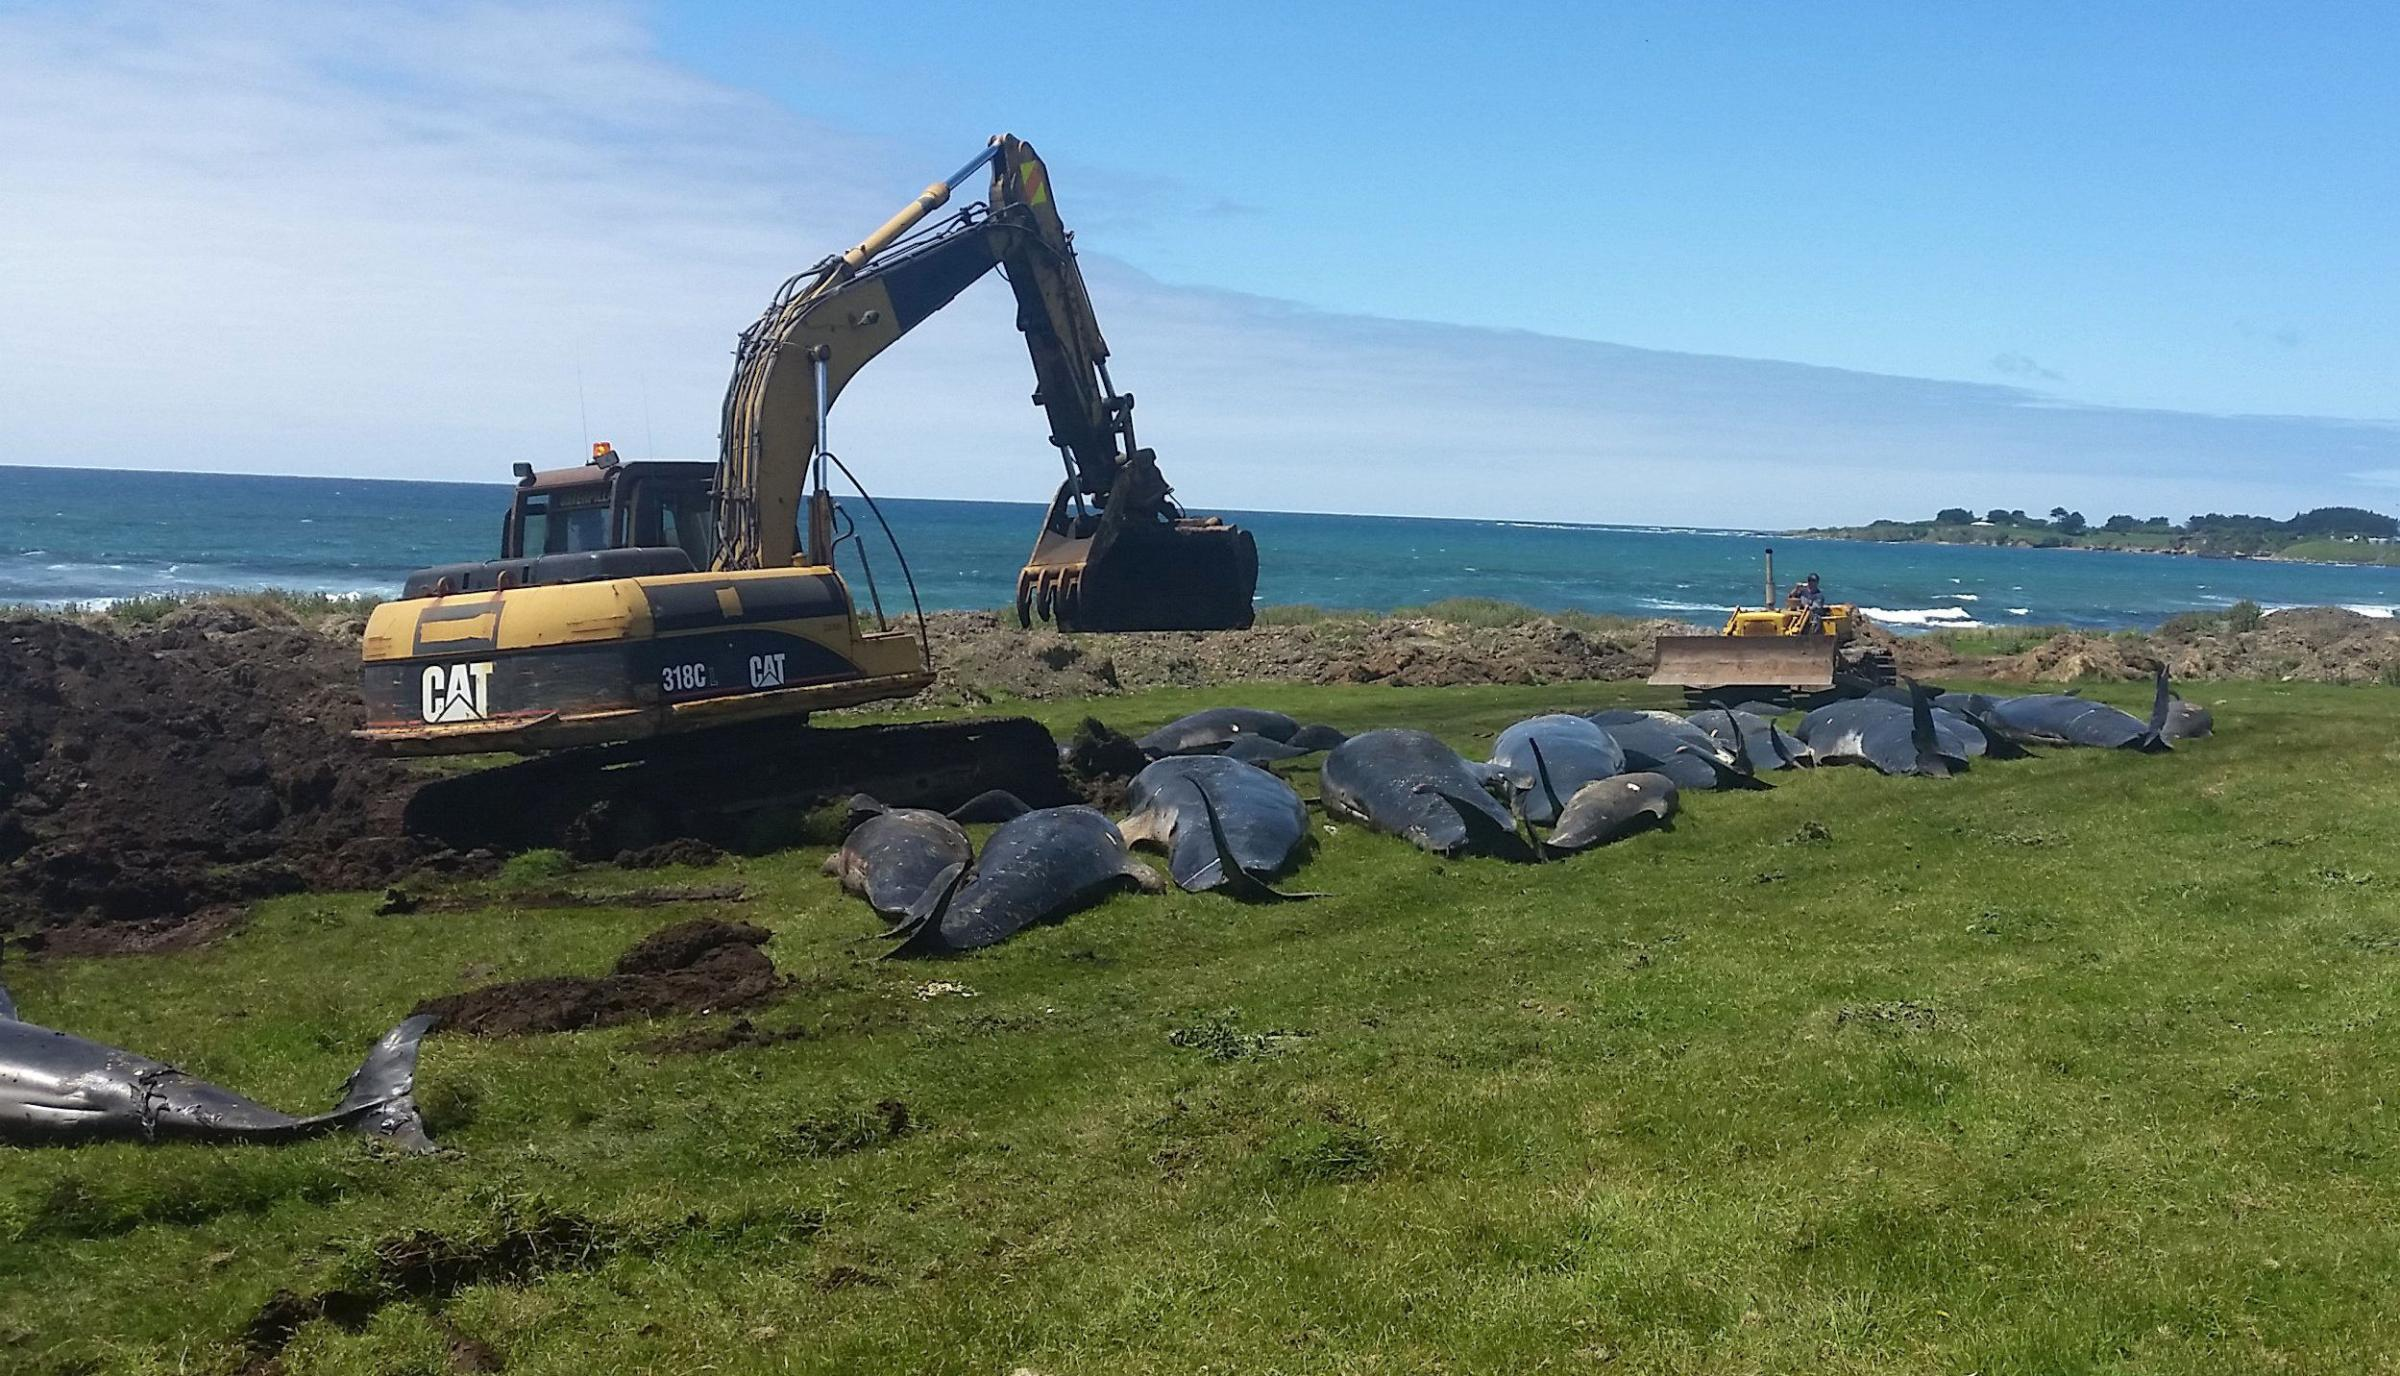 51 pilot whales die in mass stranding in New Zealand